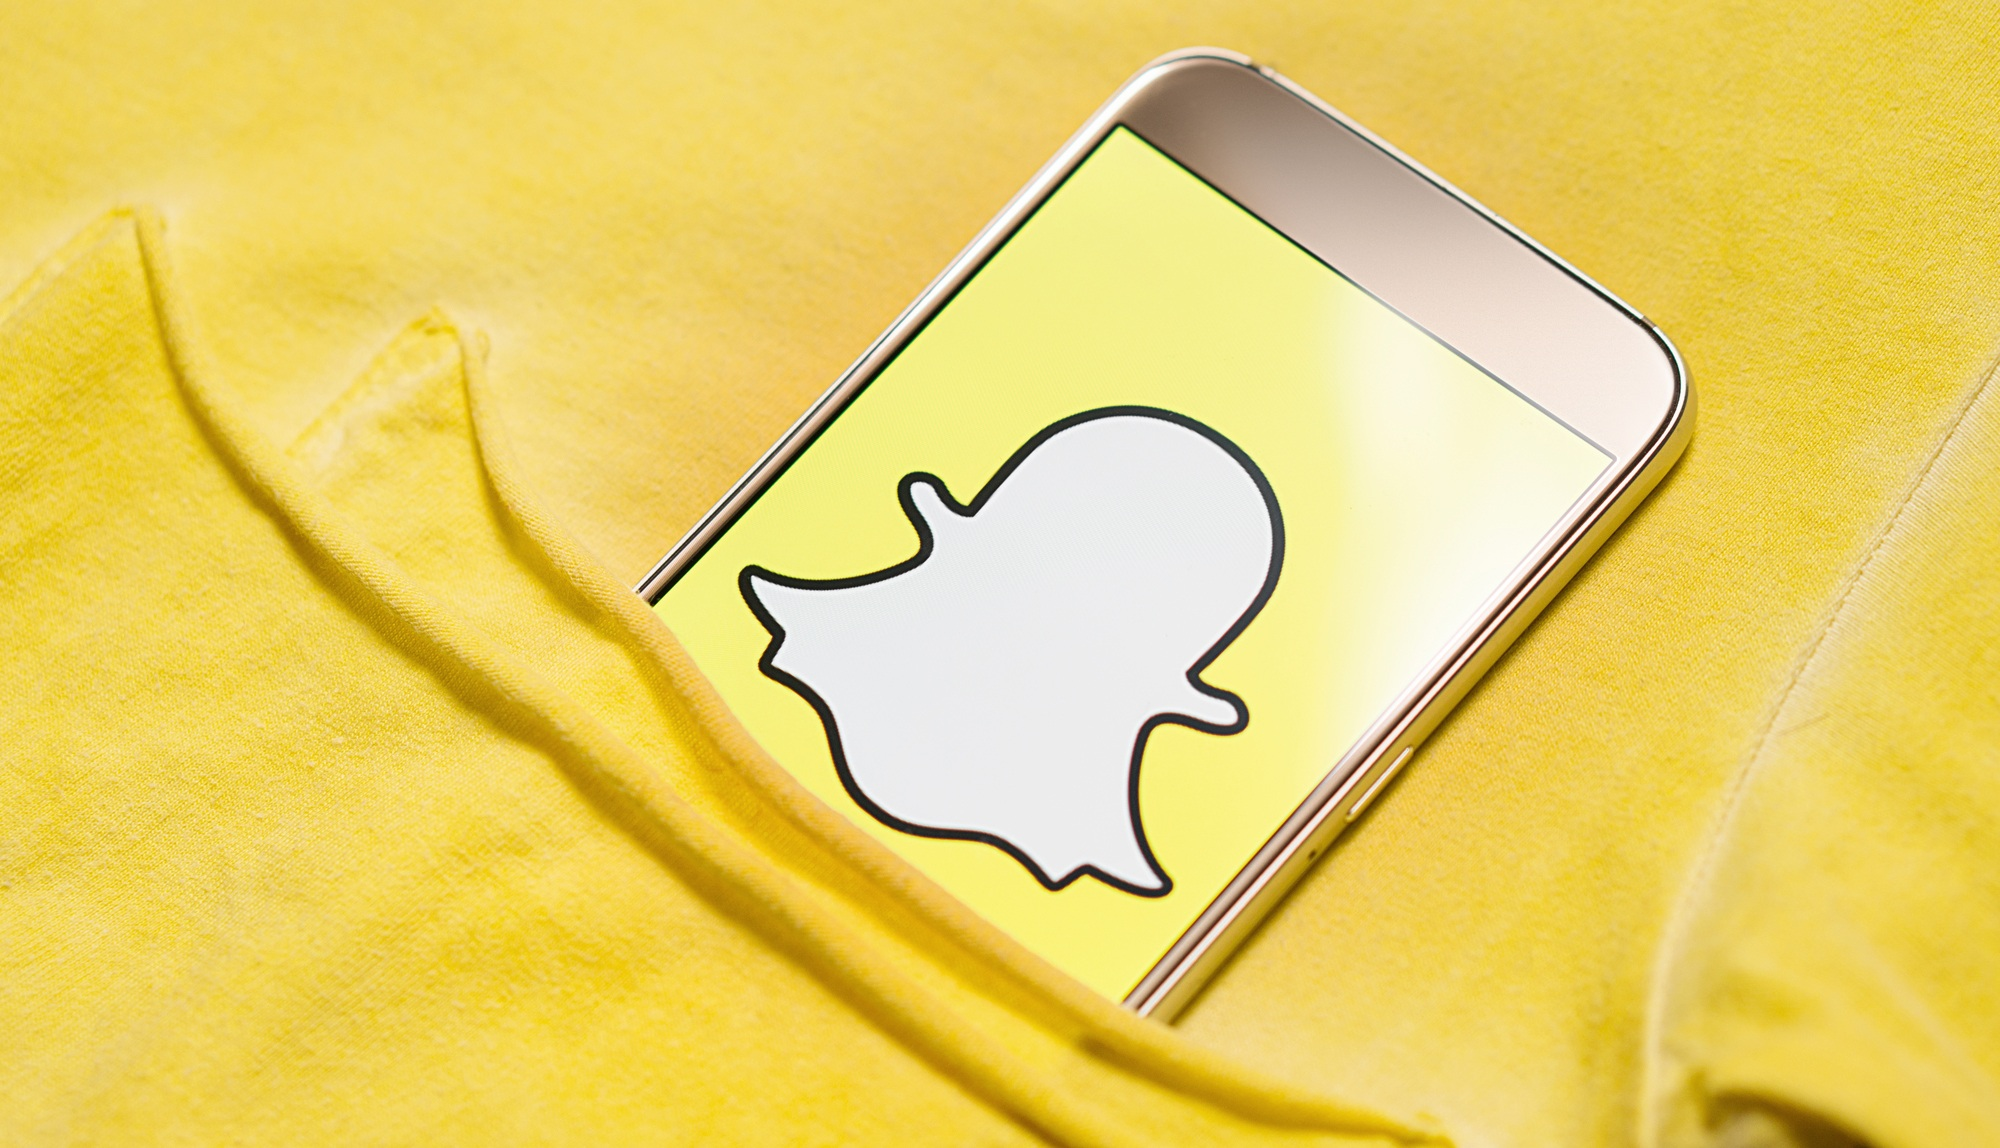 snapchat logo on smartphone screen